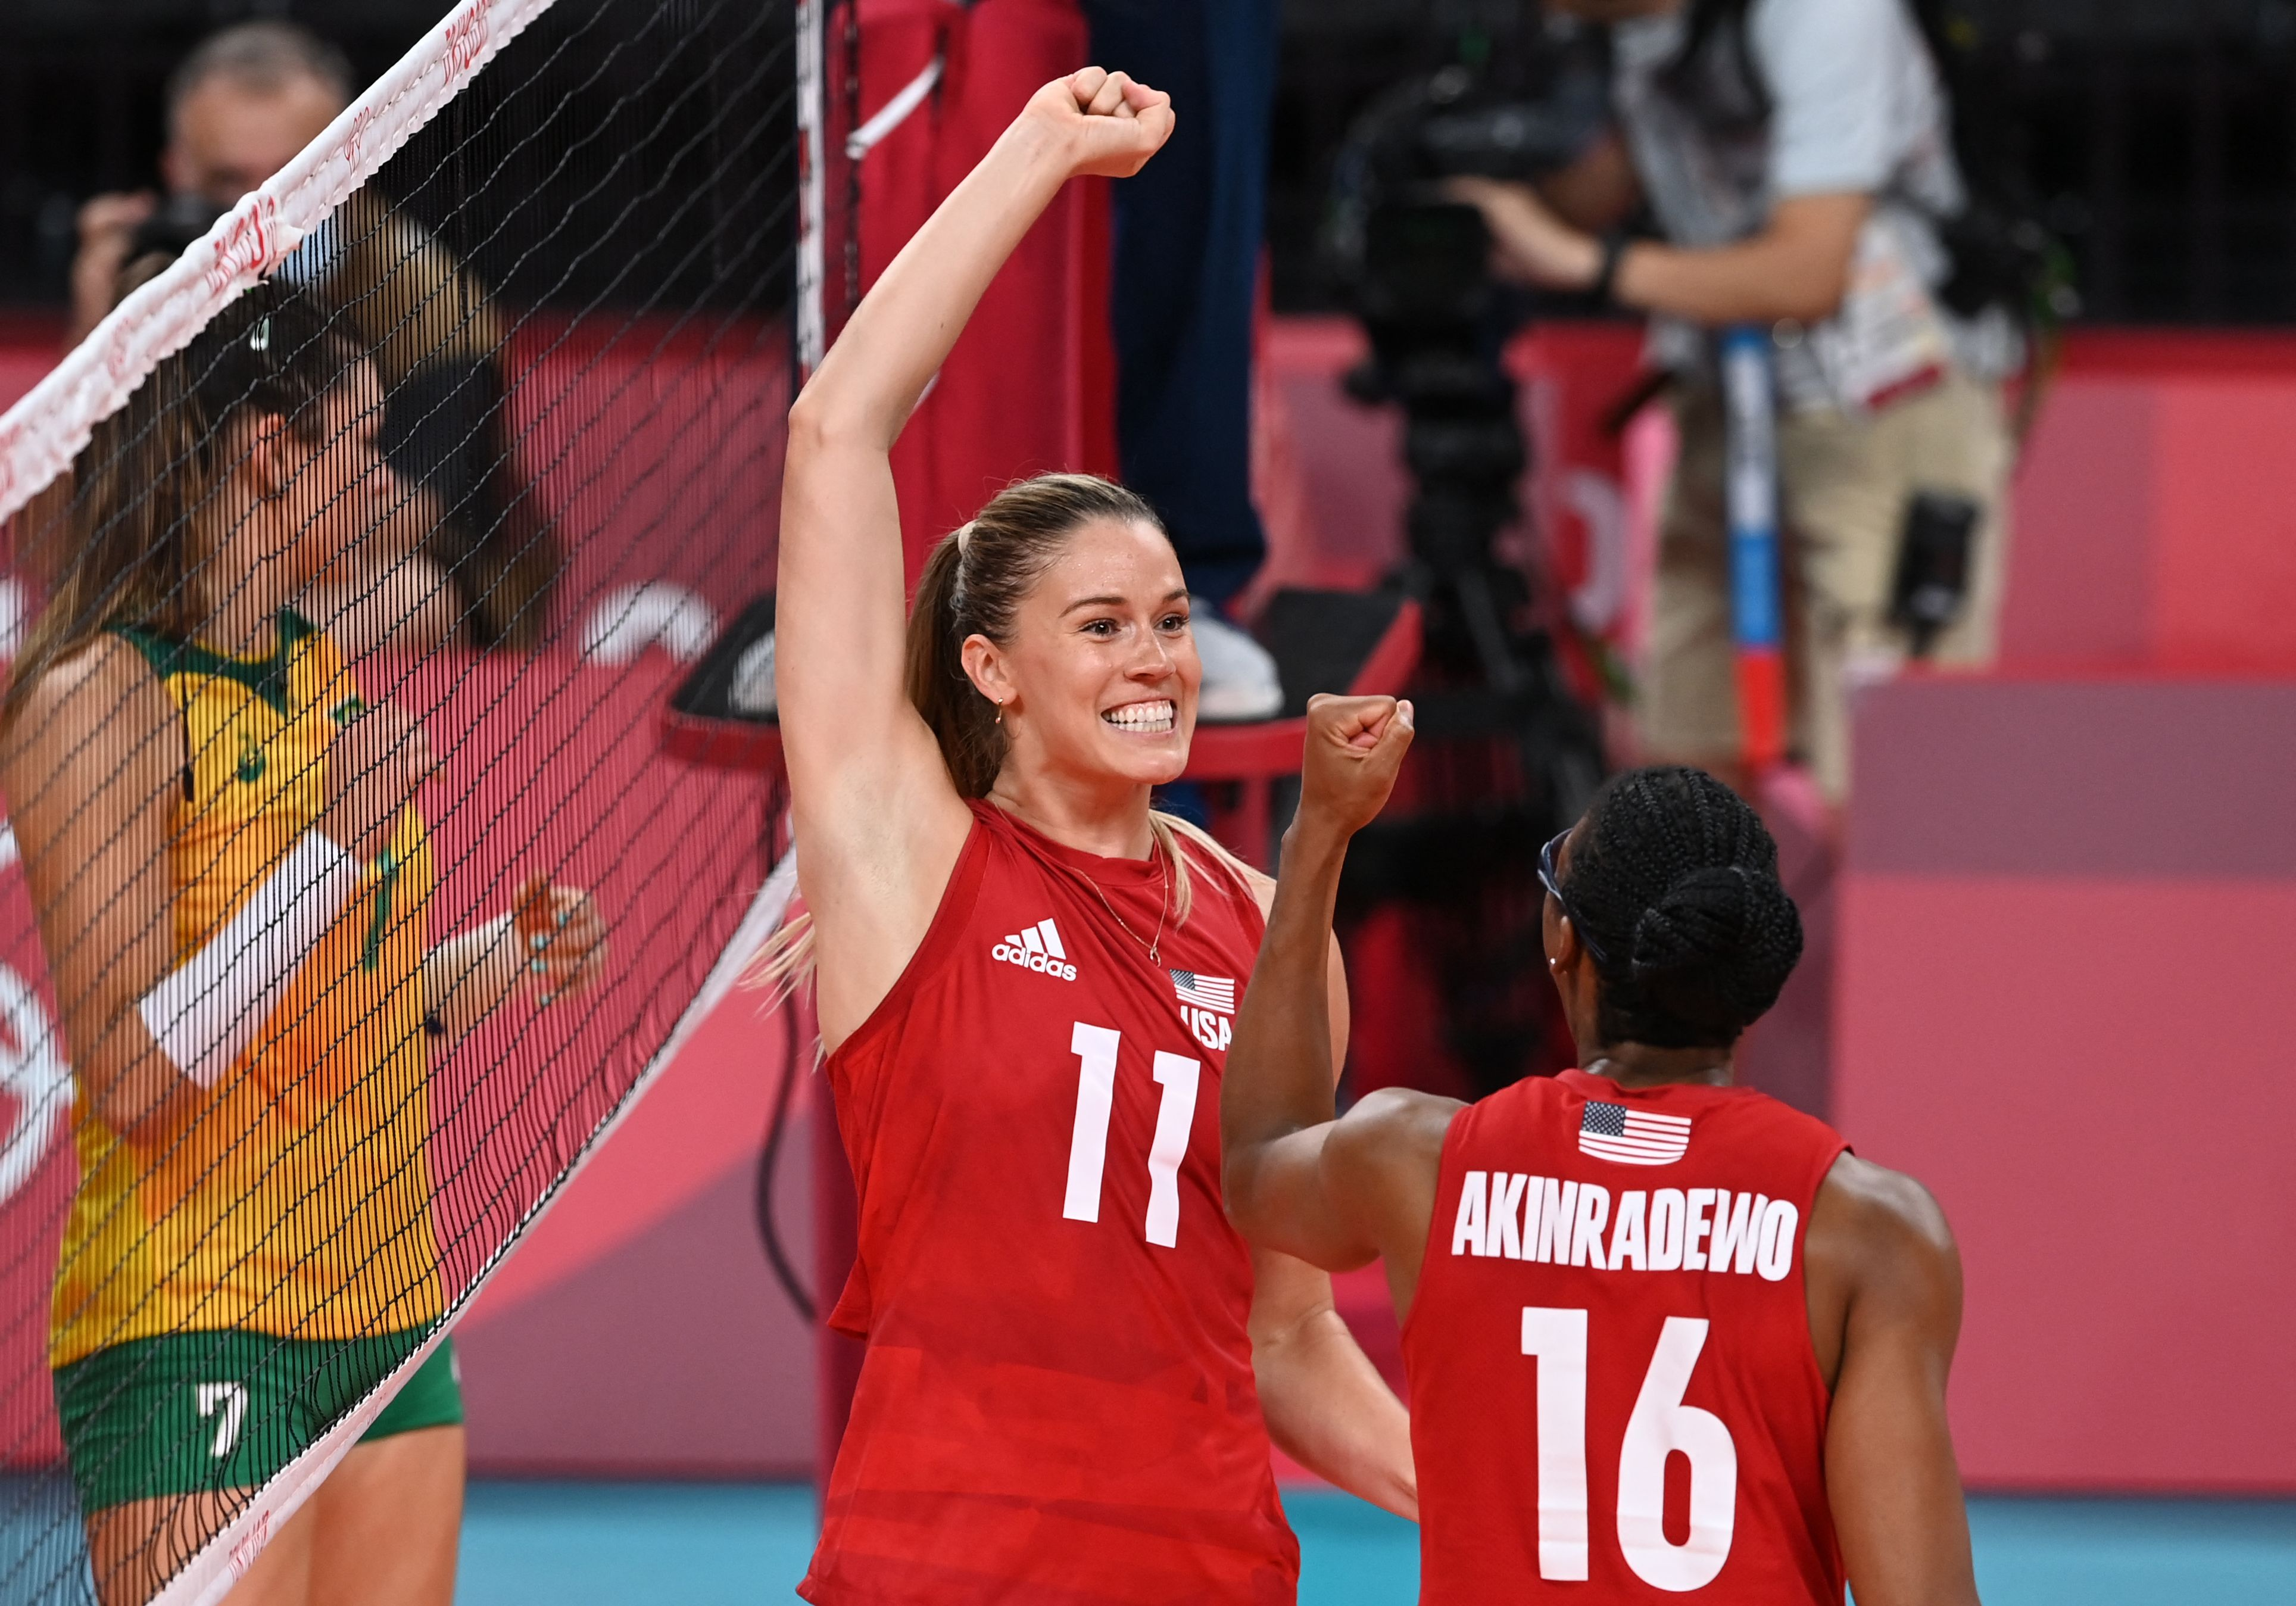 USA's Andrea Drews and USA's Foluke Akinradewo react after a point in the women's gold medal volleyball match between Brazil and USA during the Tokyo 2020 Olympic Games at Ariake Arena in Tokyo on August 8, 2021.